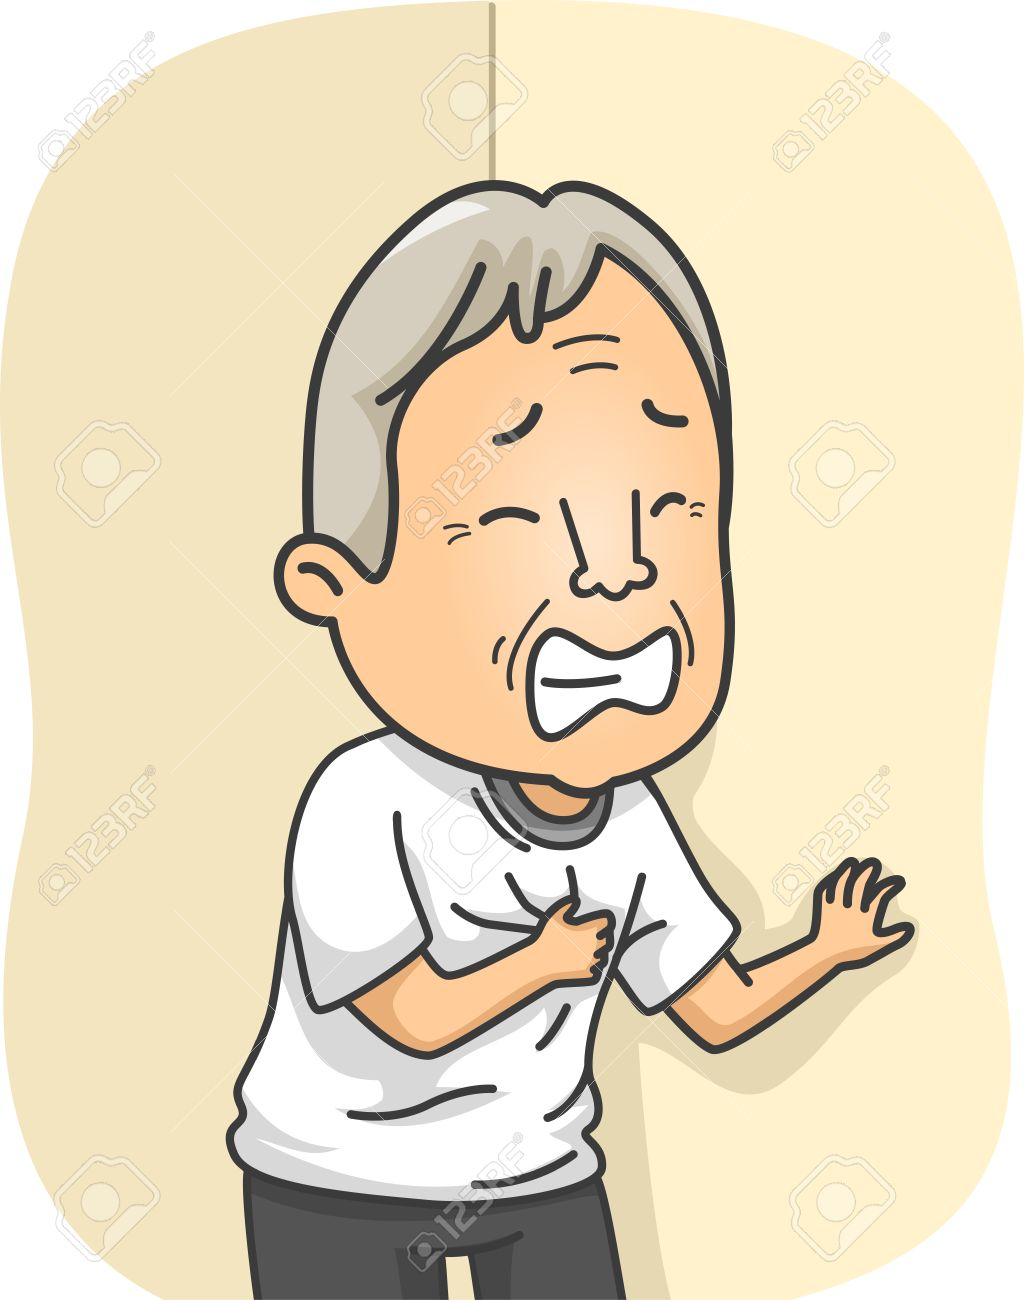 illustration featuring an elderly man having a heart attack royalty rh 123rf com Heart Attack Survivor Cartoon Character Having a Heart Attack